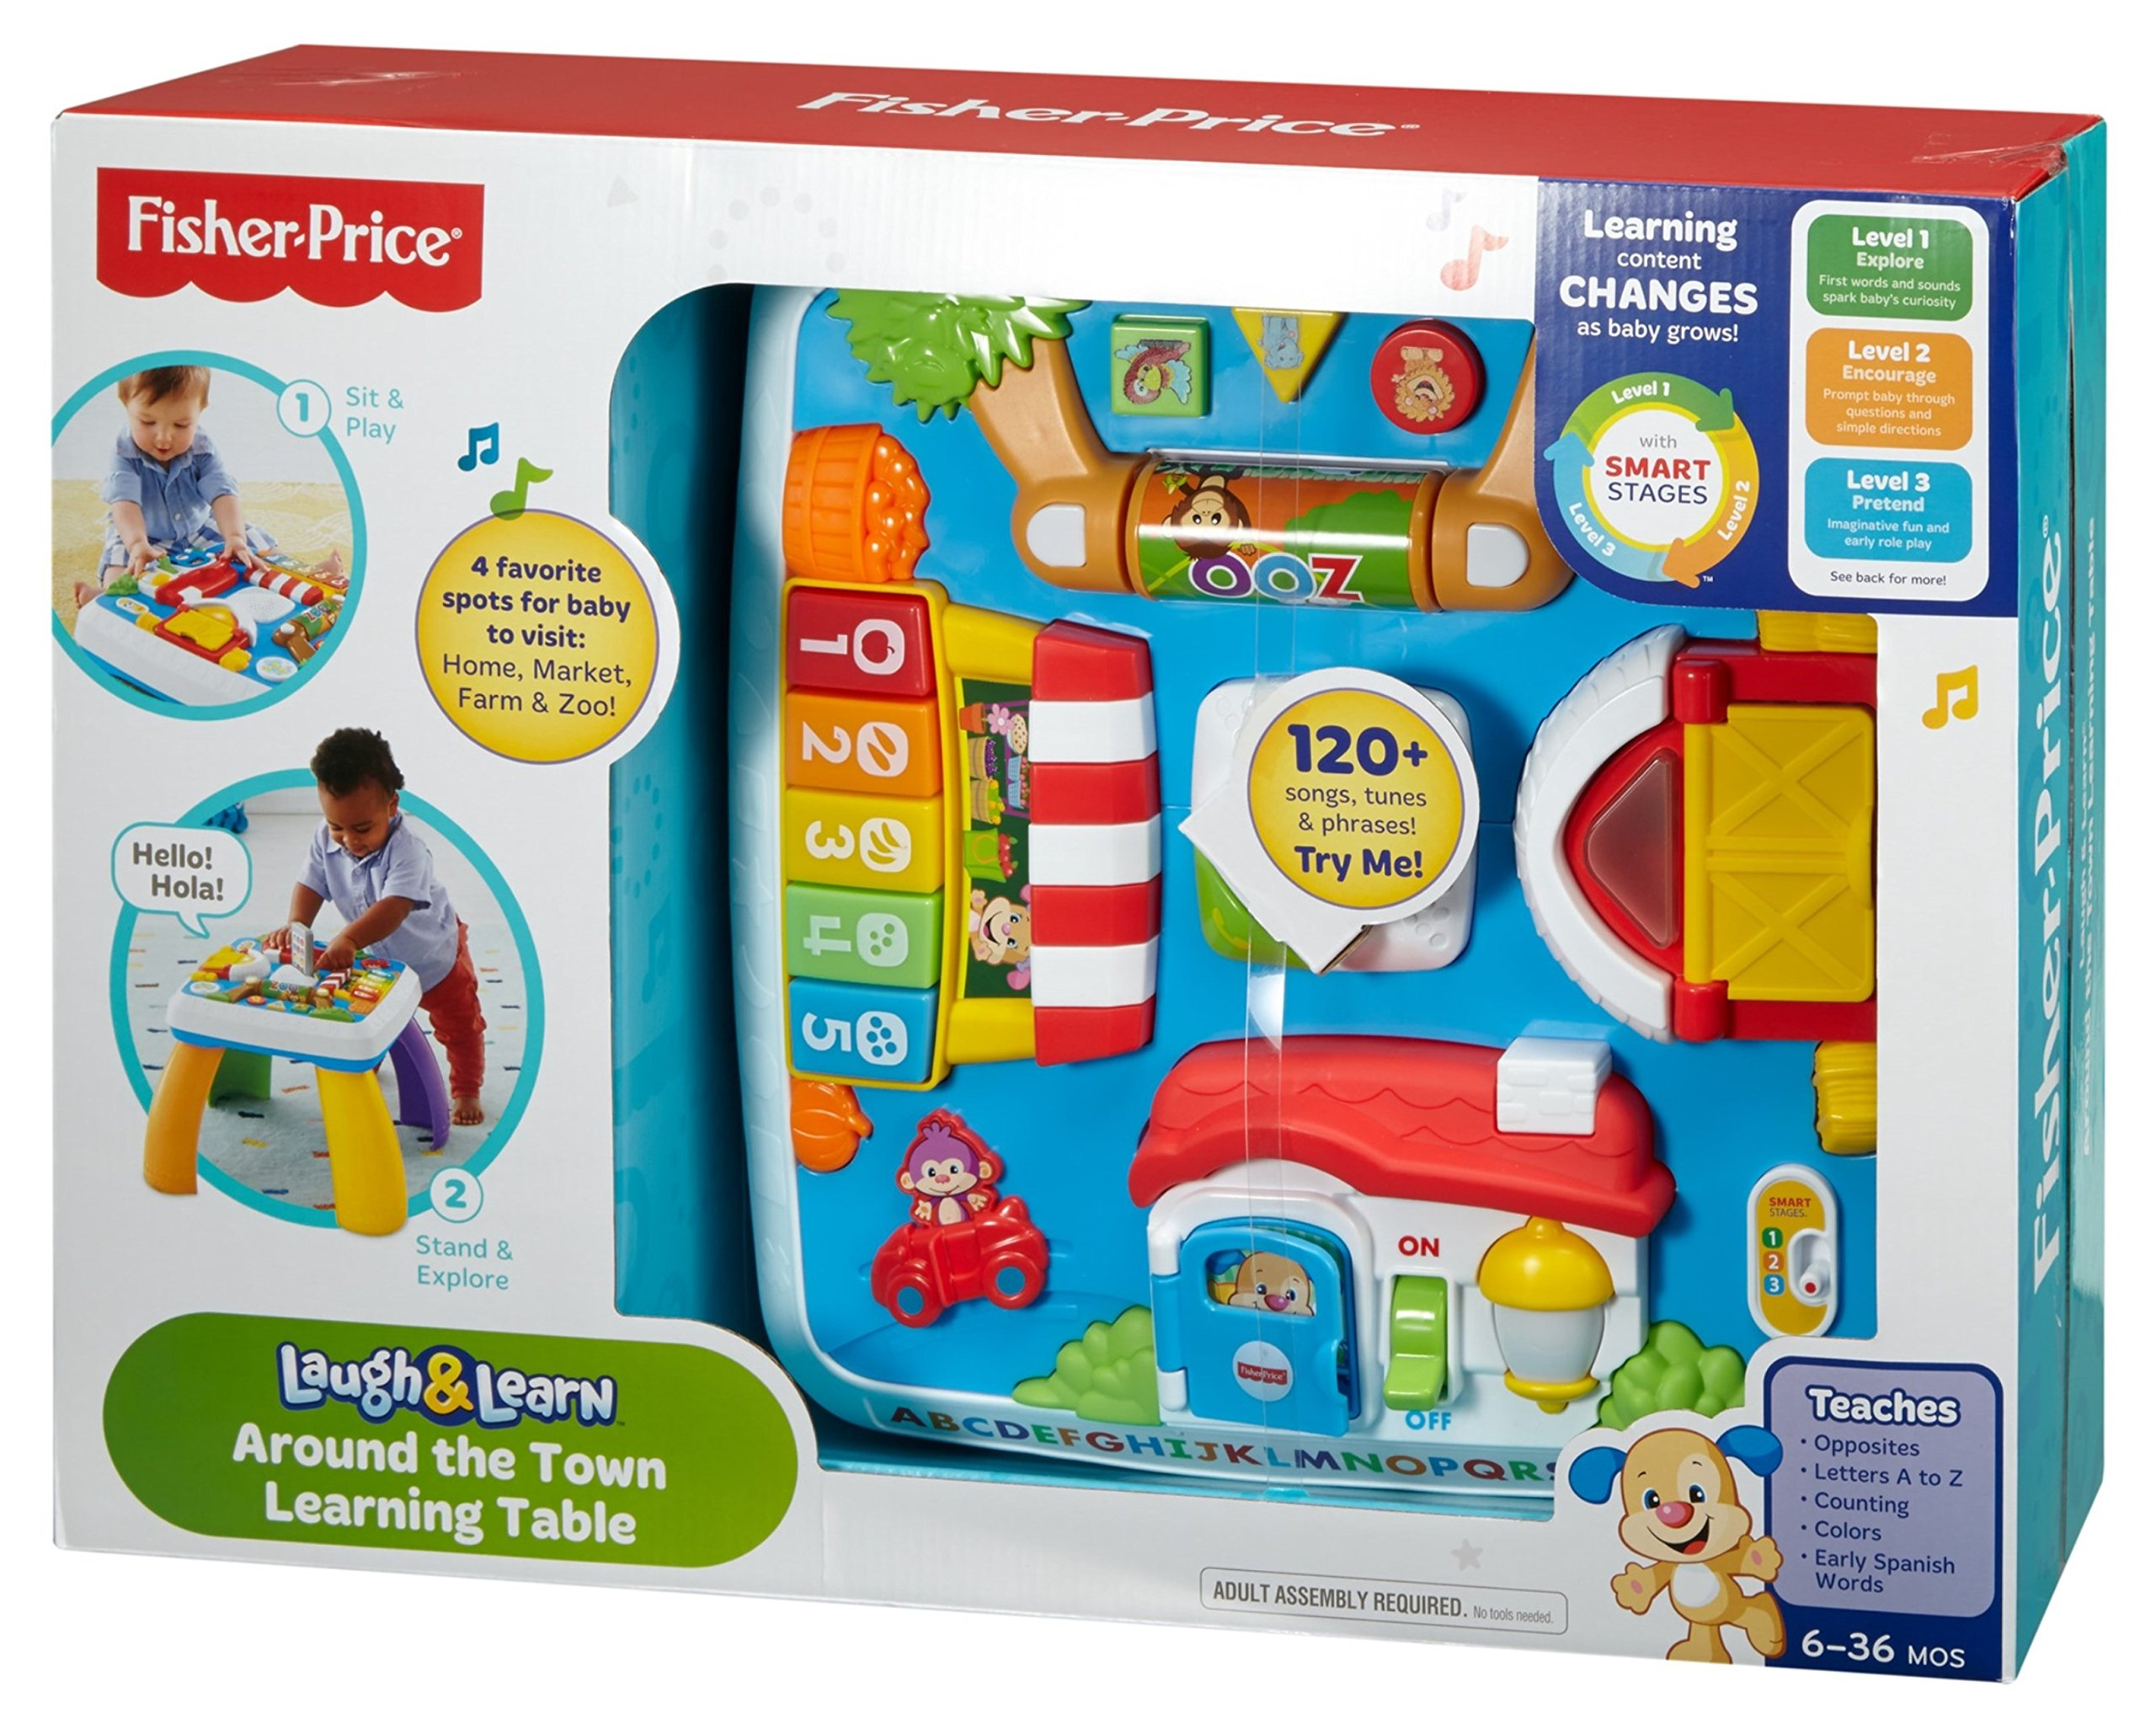 Fisher-Price Laugh & Learn Around The Town Learning Table by Fisher-Price (Image #23)